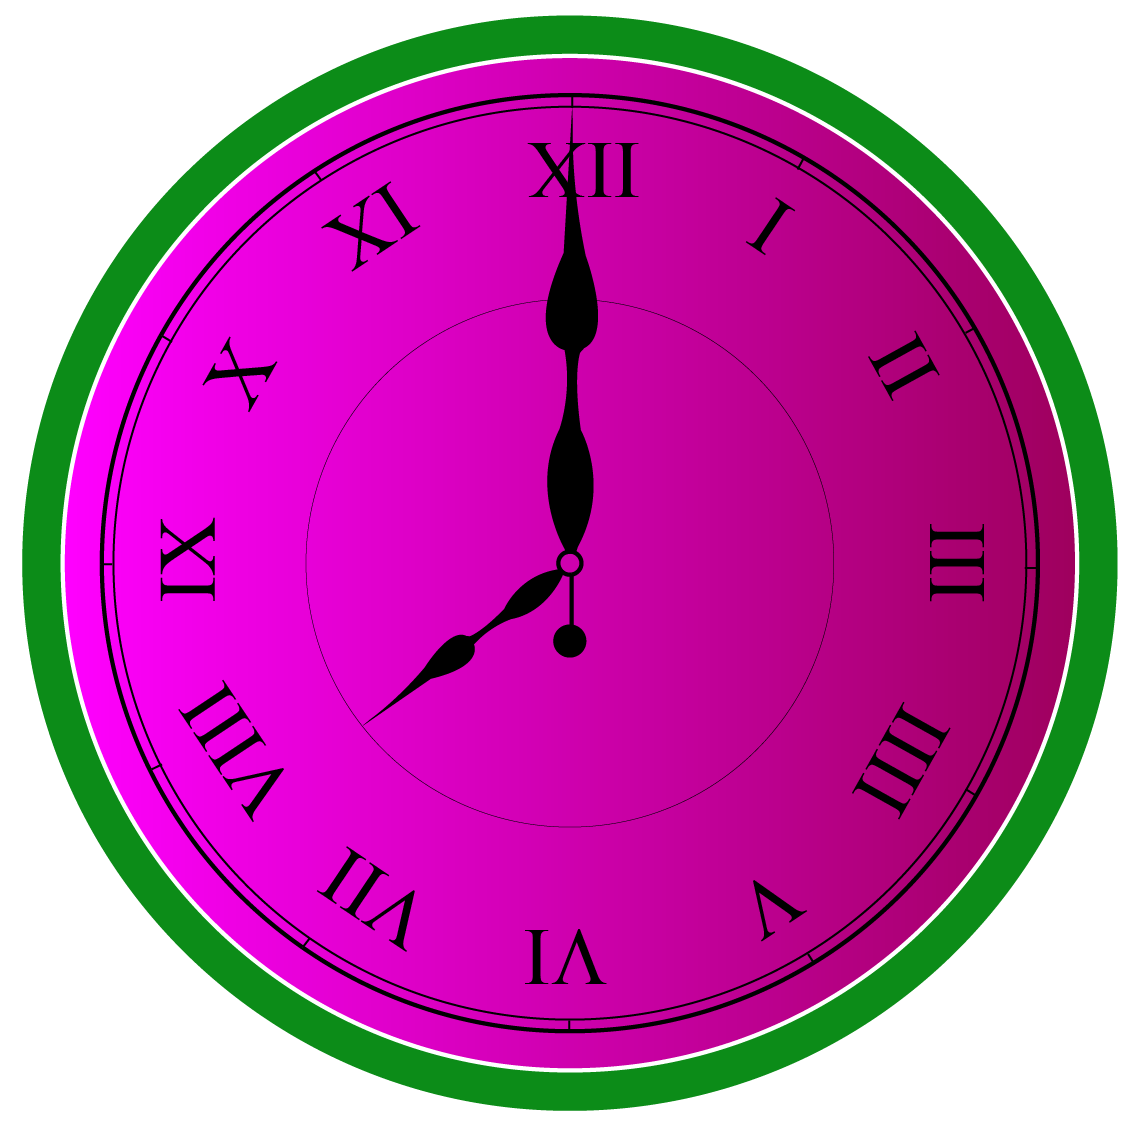 Roman Numerals: Clock showing the time 8 o clock